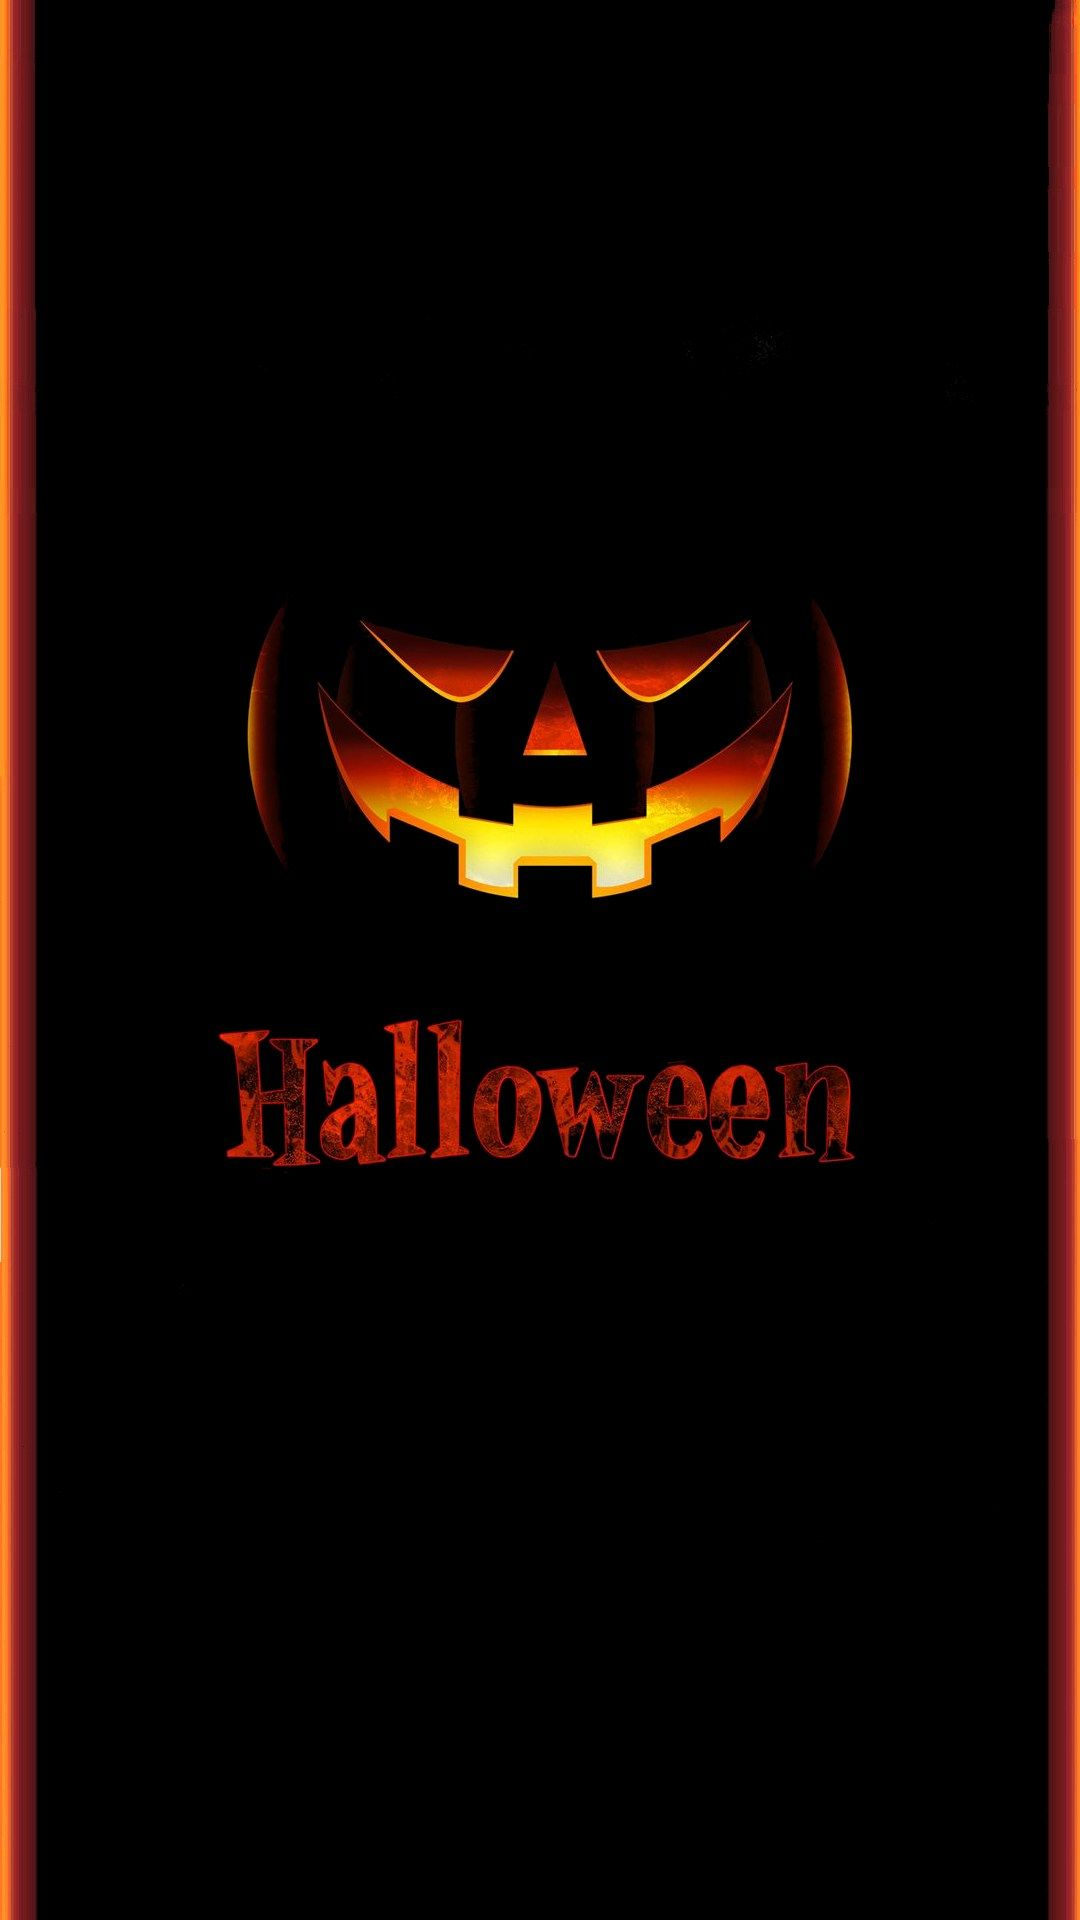 Halloween Pumpkin Wallpaper Happy Halloween Fb Background